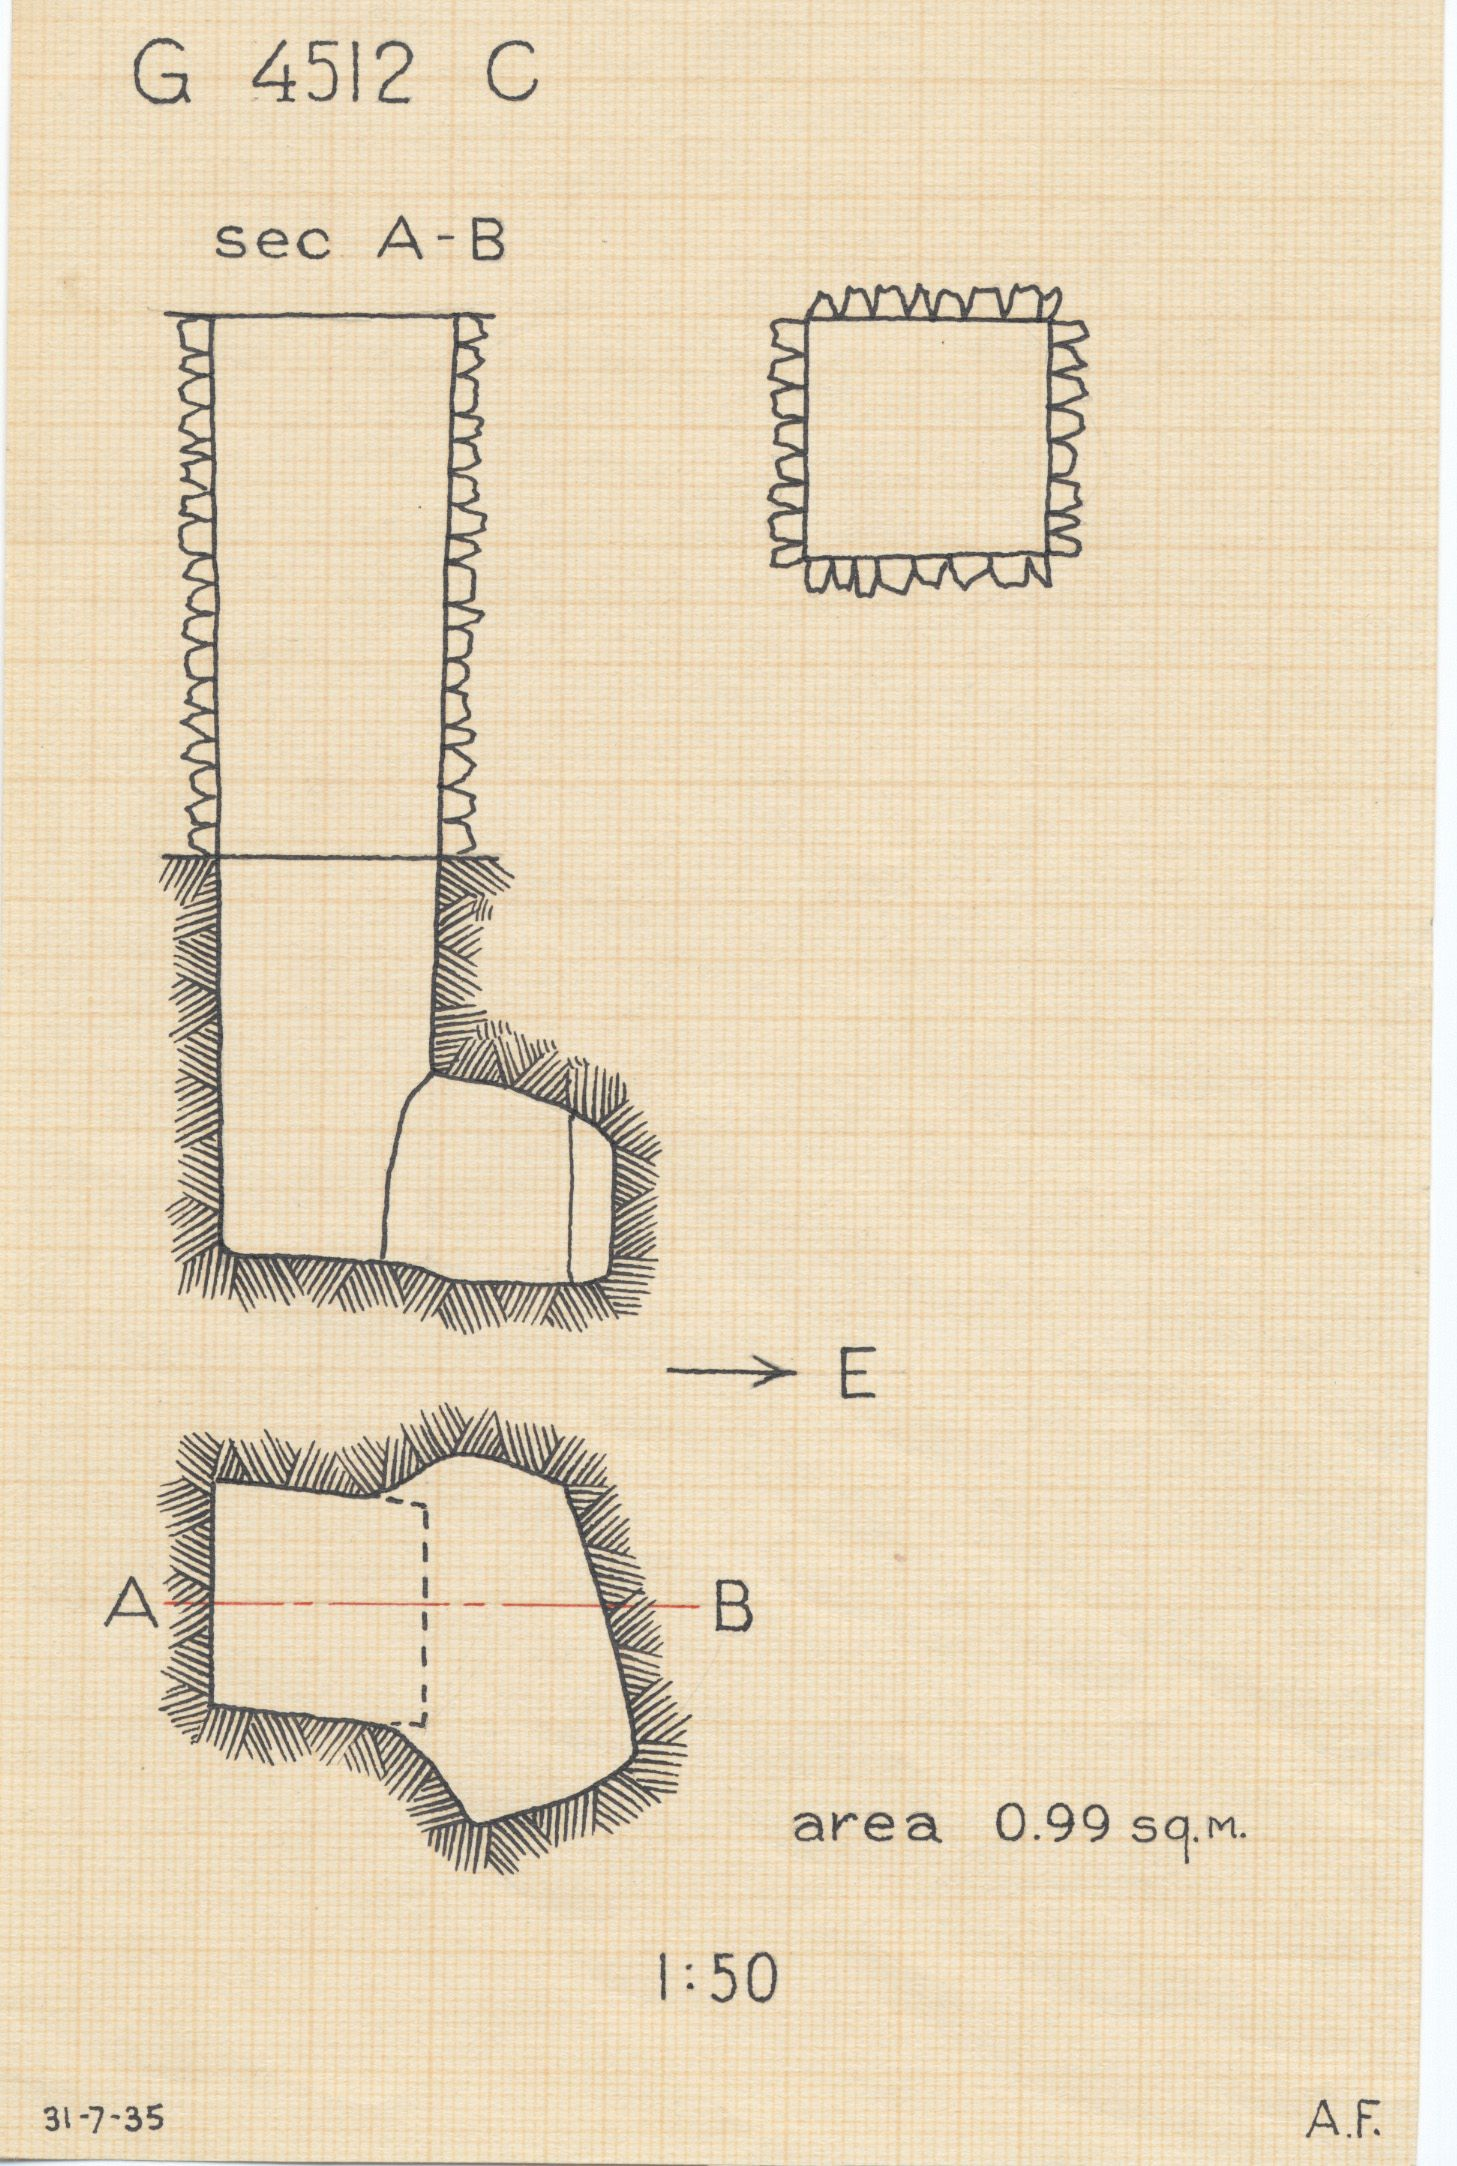 Maps and plans: G 4512, Shaft C